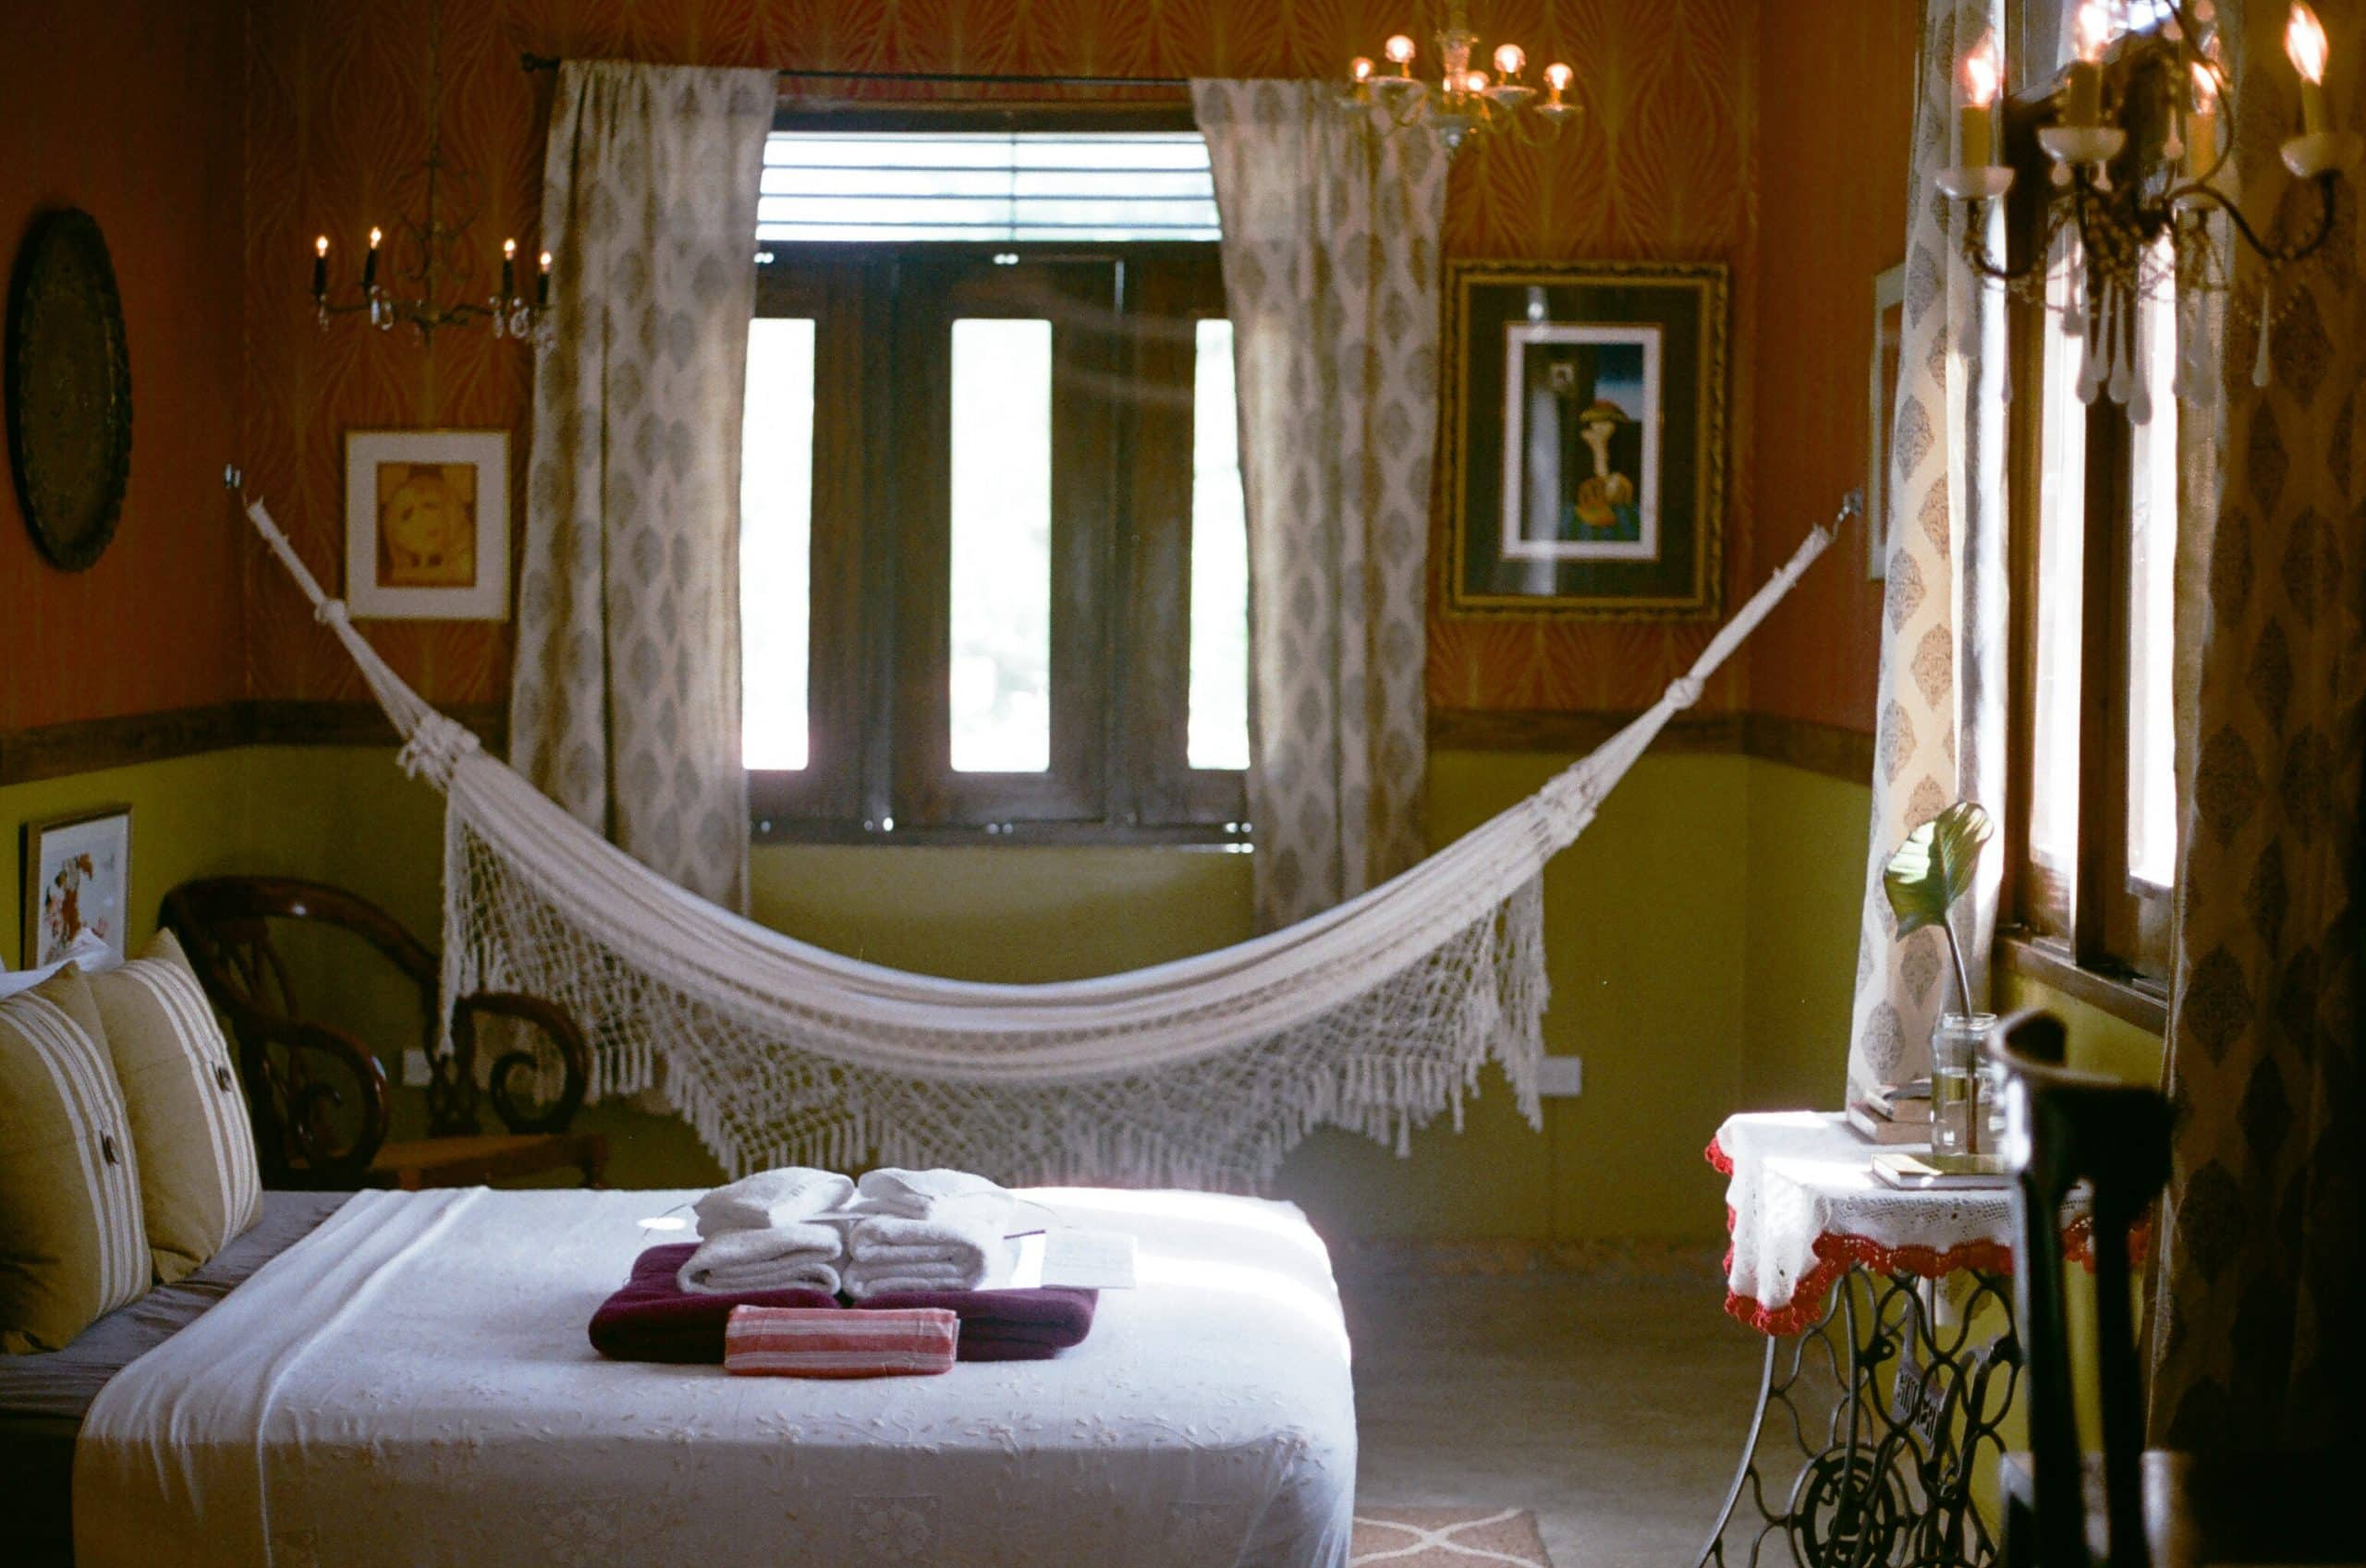 A hammock and cozy bed in a bedroom of the Dreamcatcher hotel